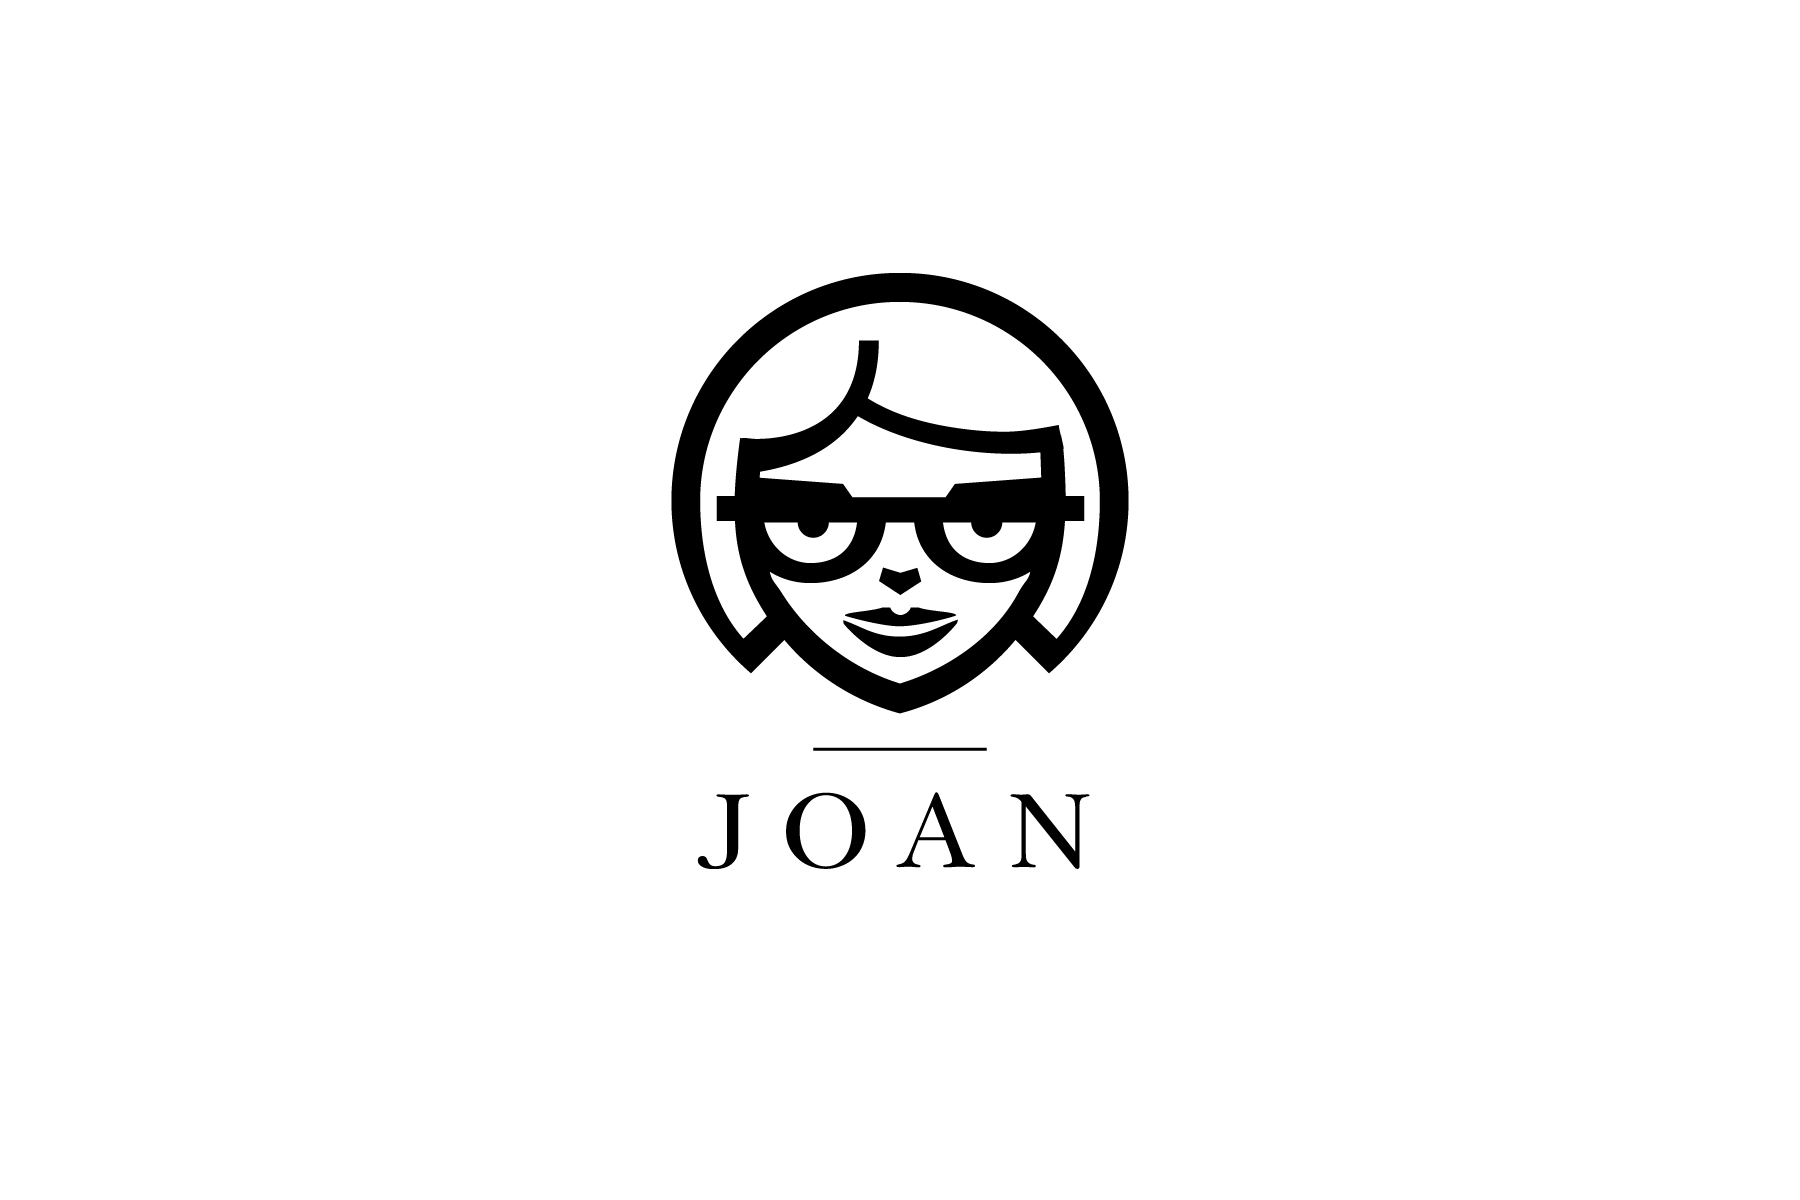 Joan logo for Famous Joans